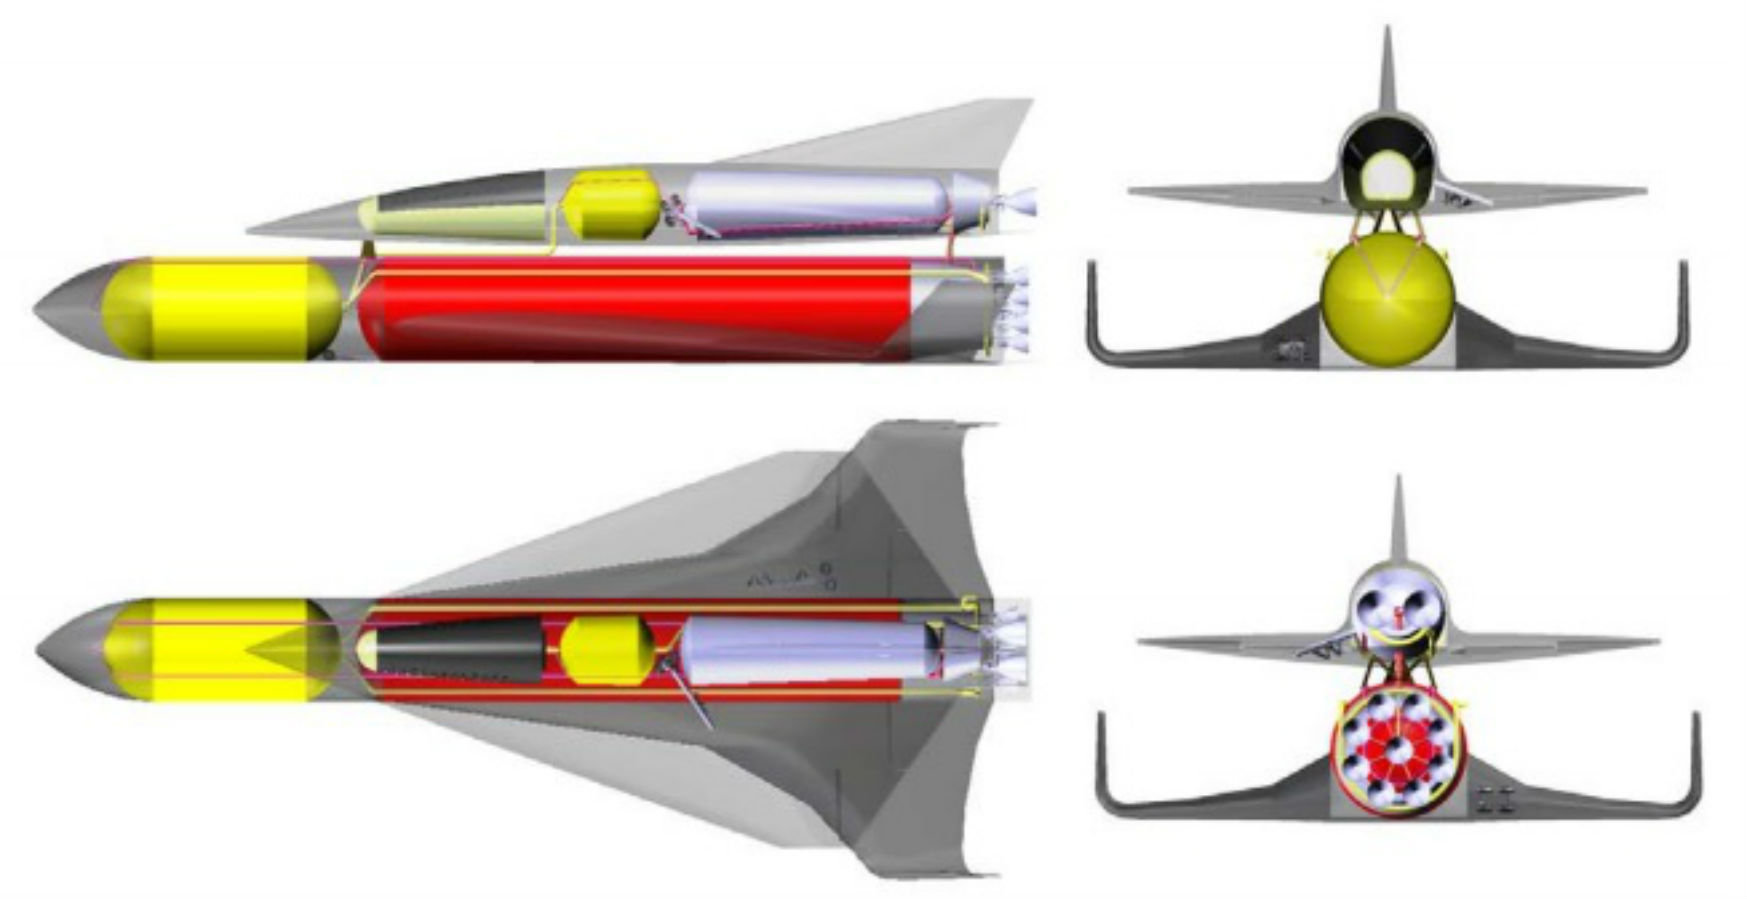 Sketch of the SpaceLiner with passenger stage on top and booster stage at bottom position.